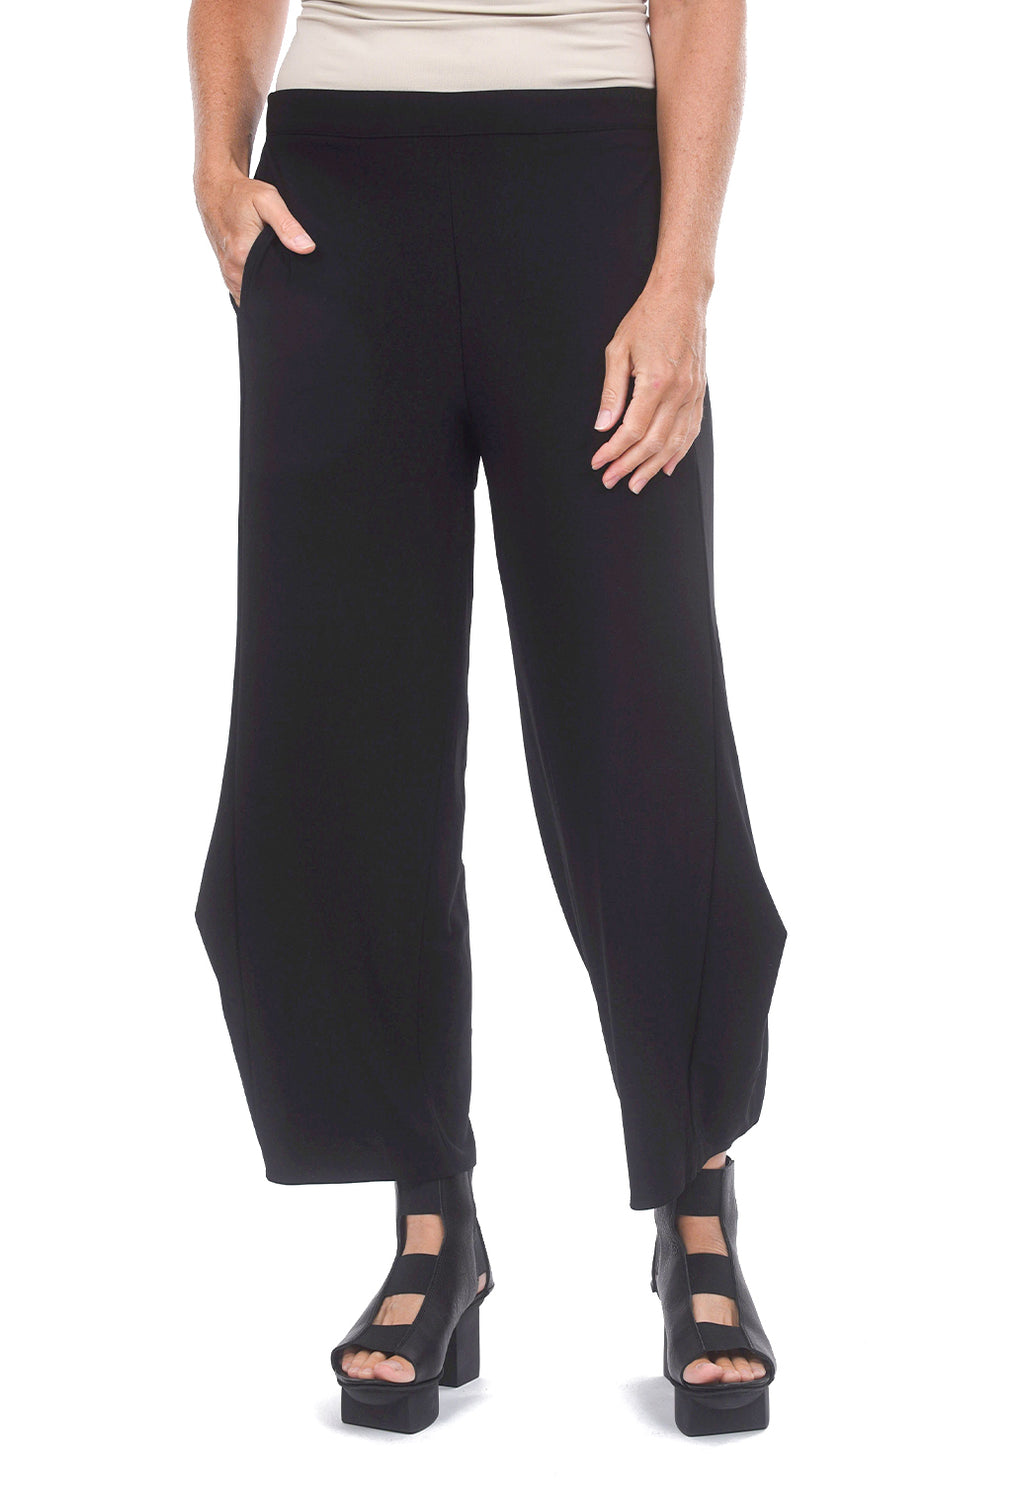 Foundation Sadie Pants, Black